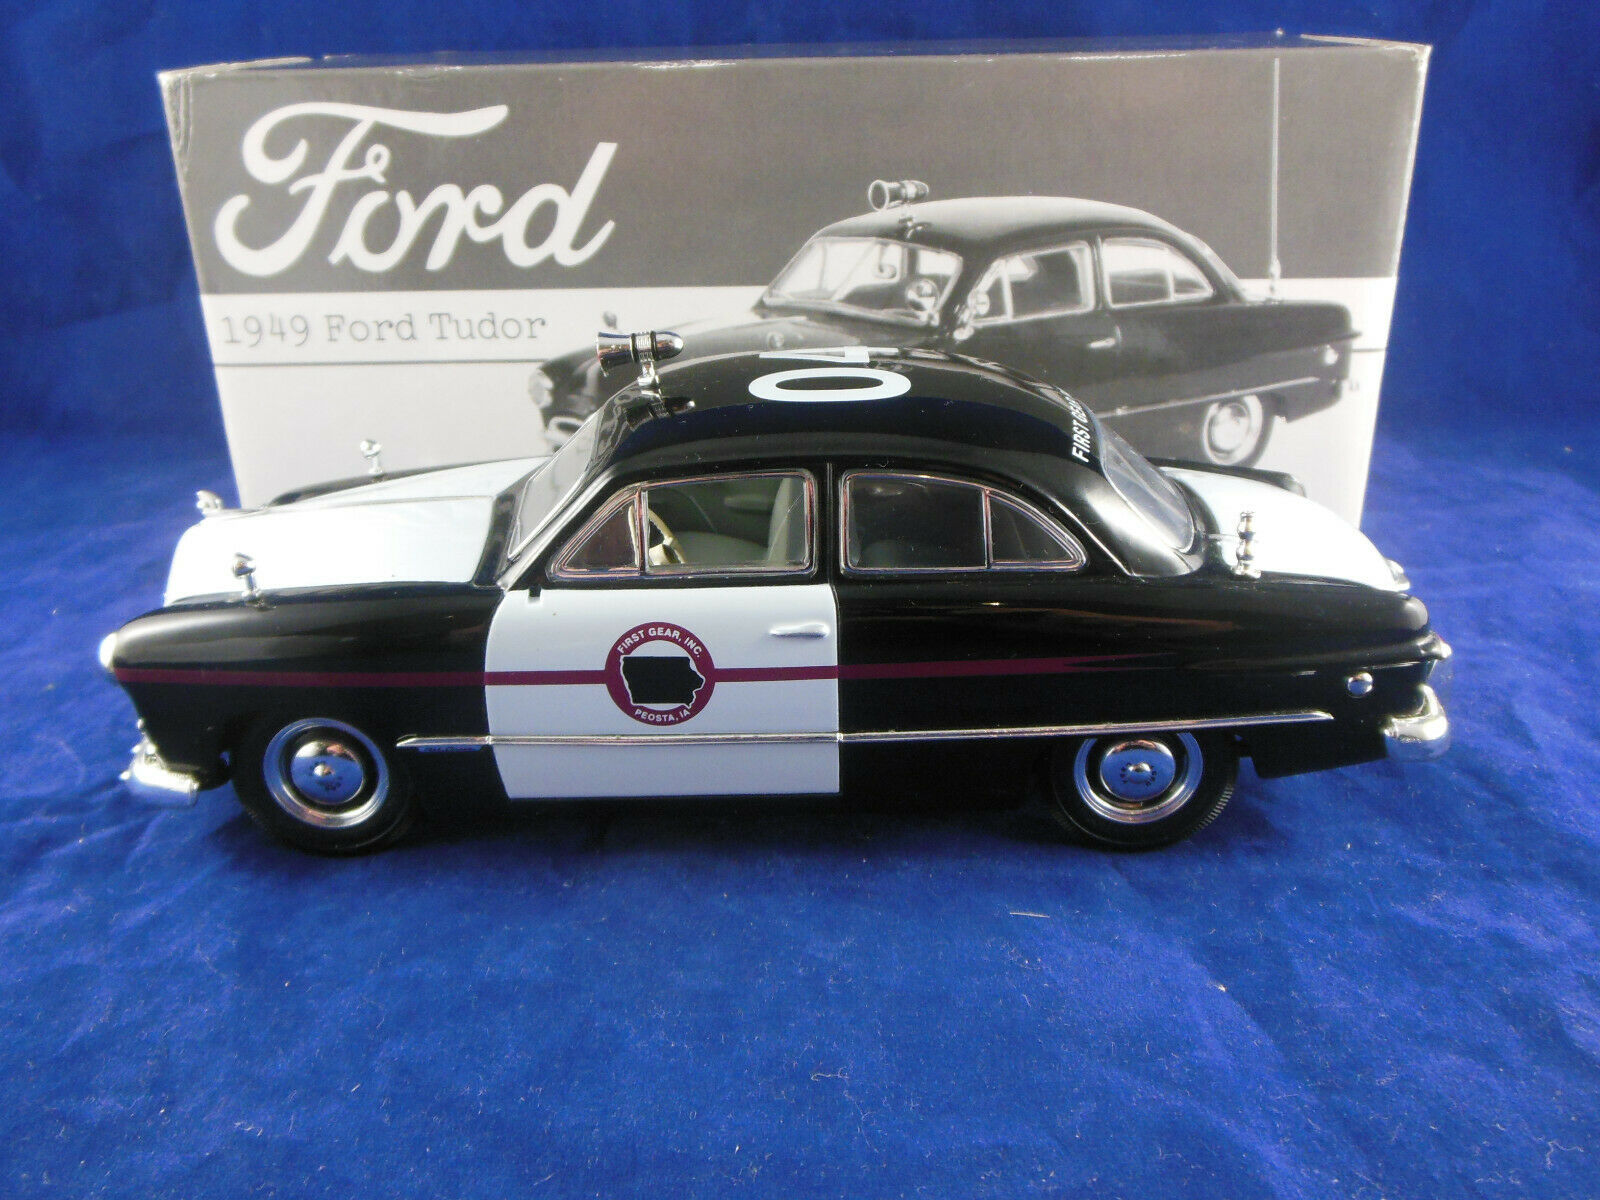 First Gear 19-0025 1949 Ford Tudor  First Gear Patrol  Car 1 25 scale